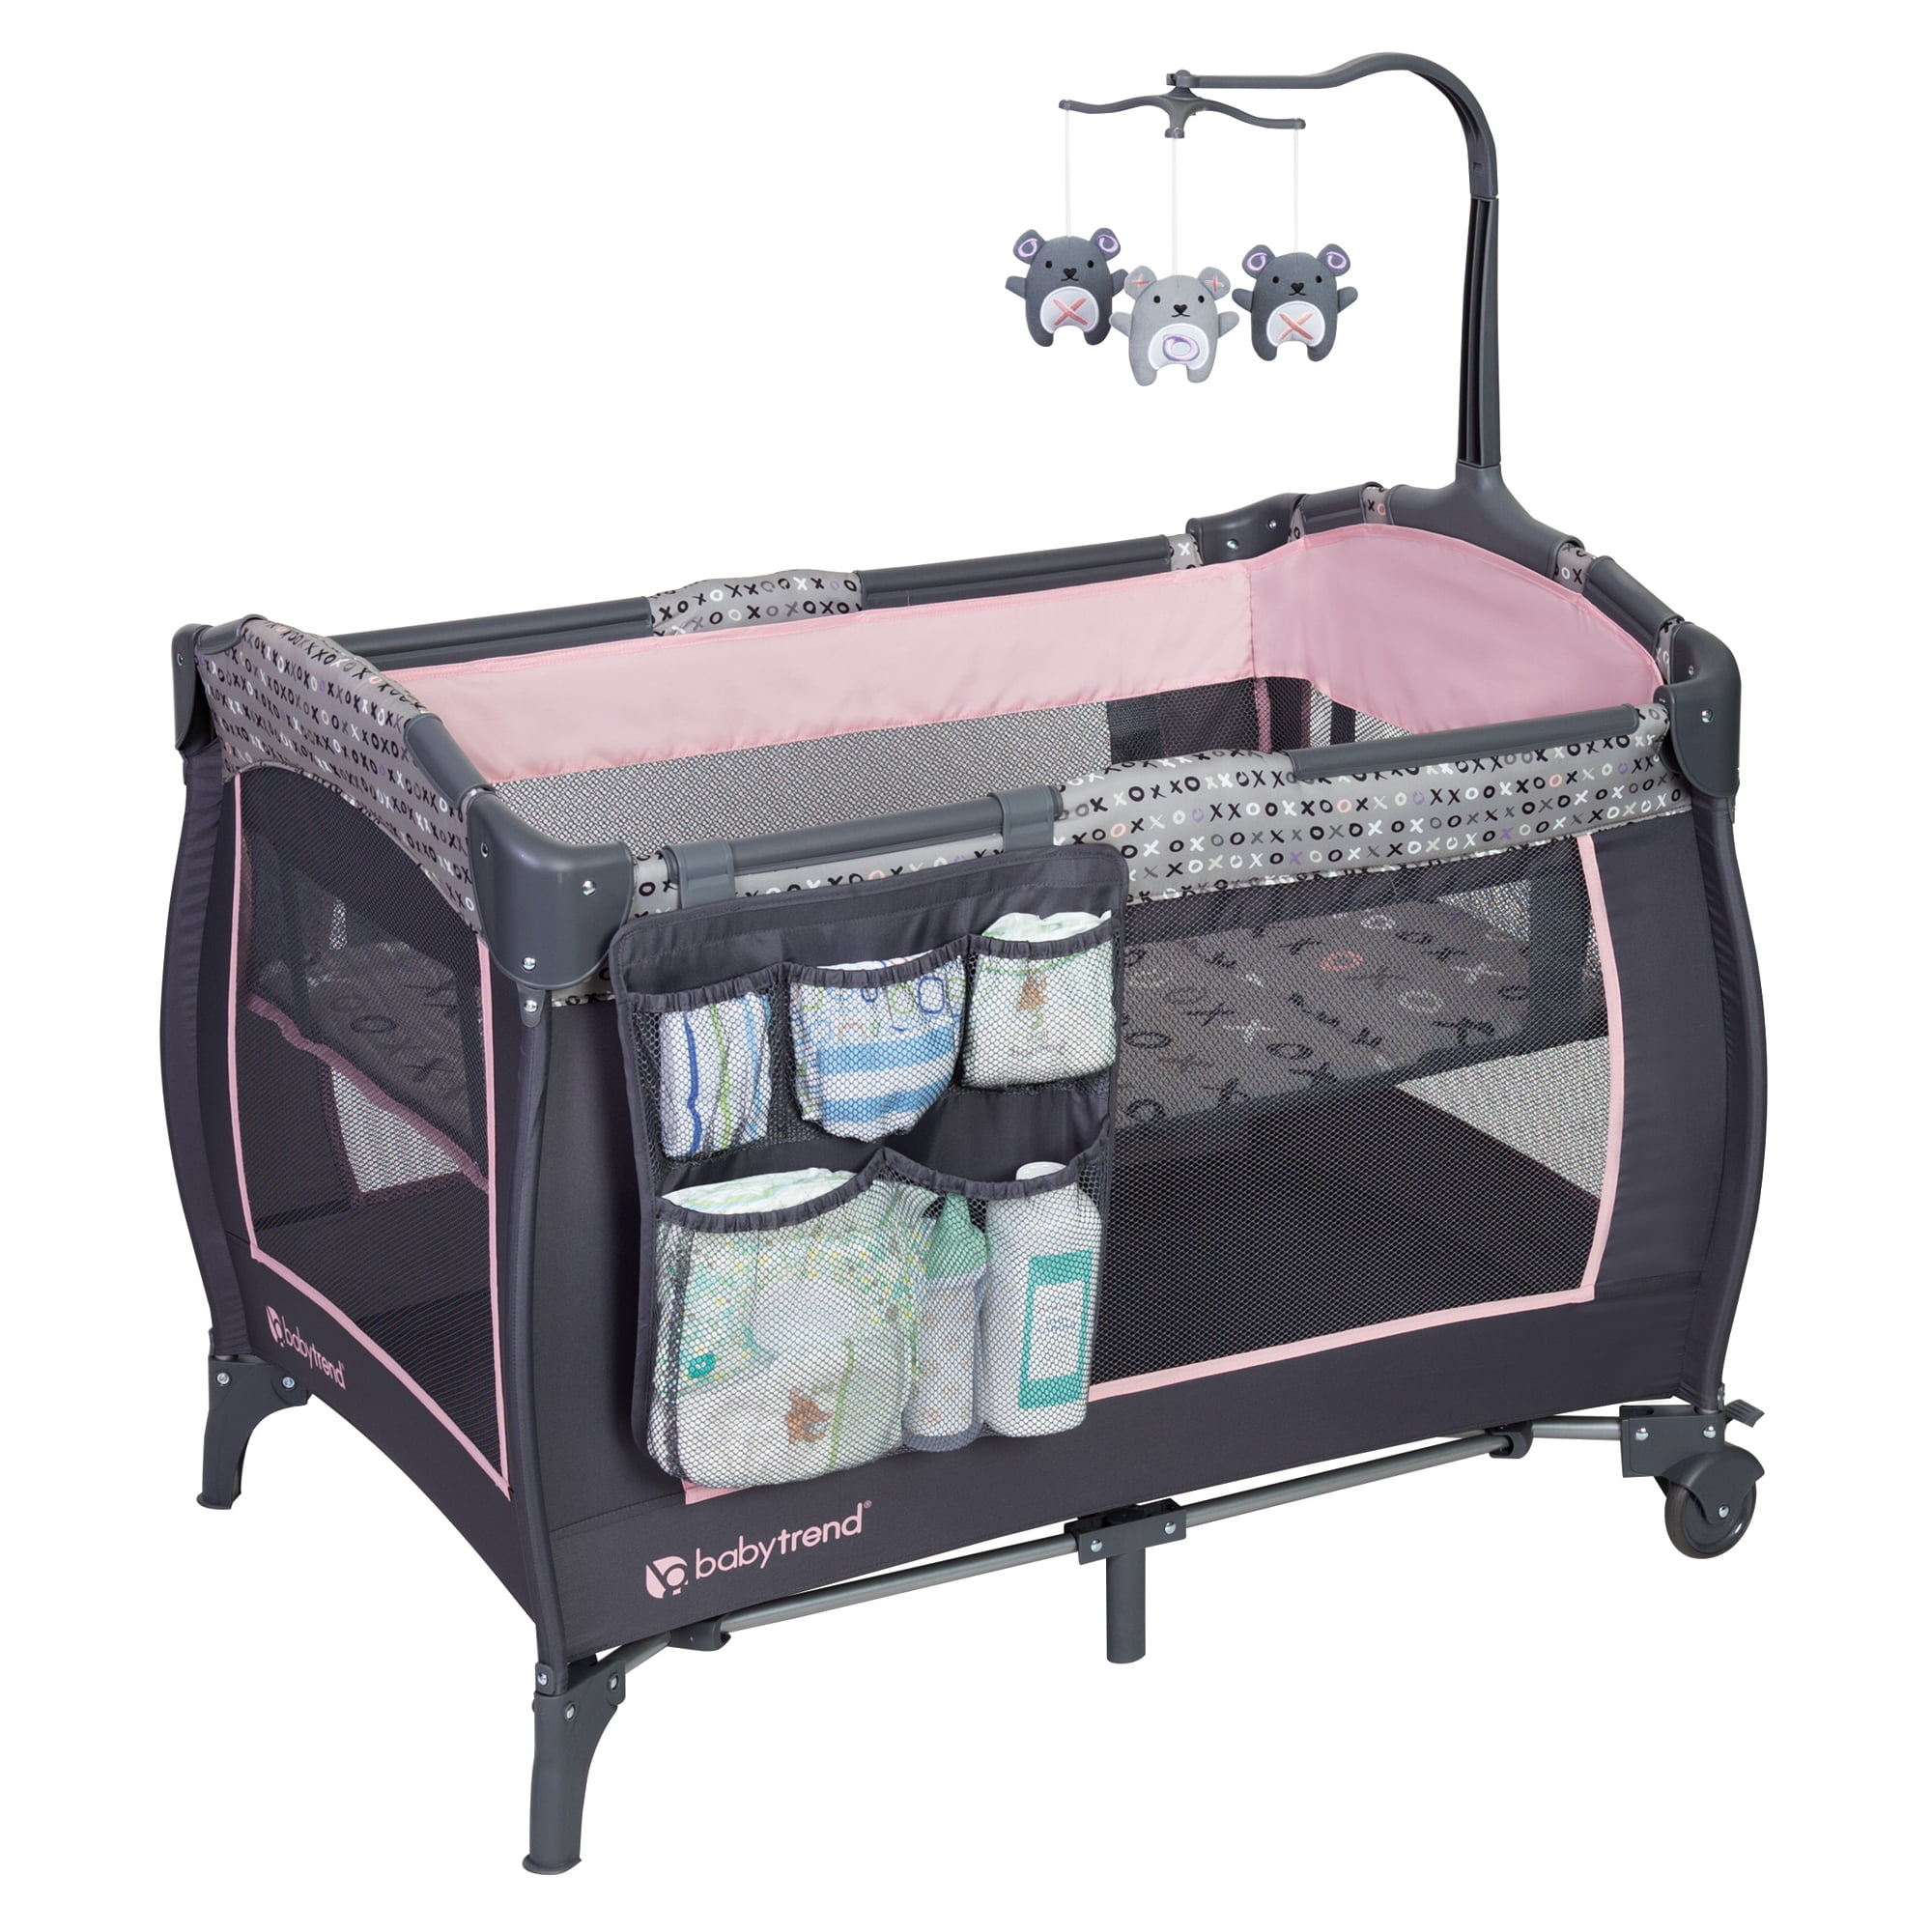 Baby Trend Trend-E Nursery Center Play Pen, Starlight Pink by Baby Trend